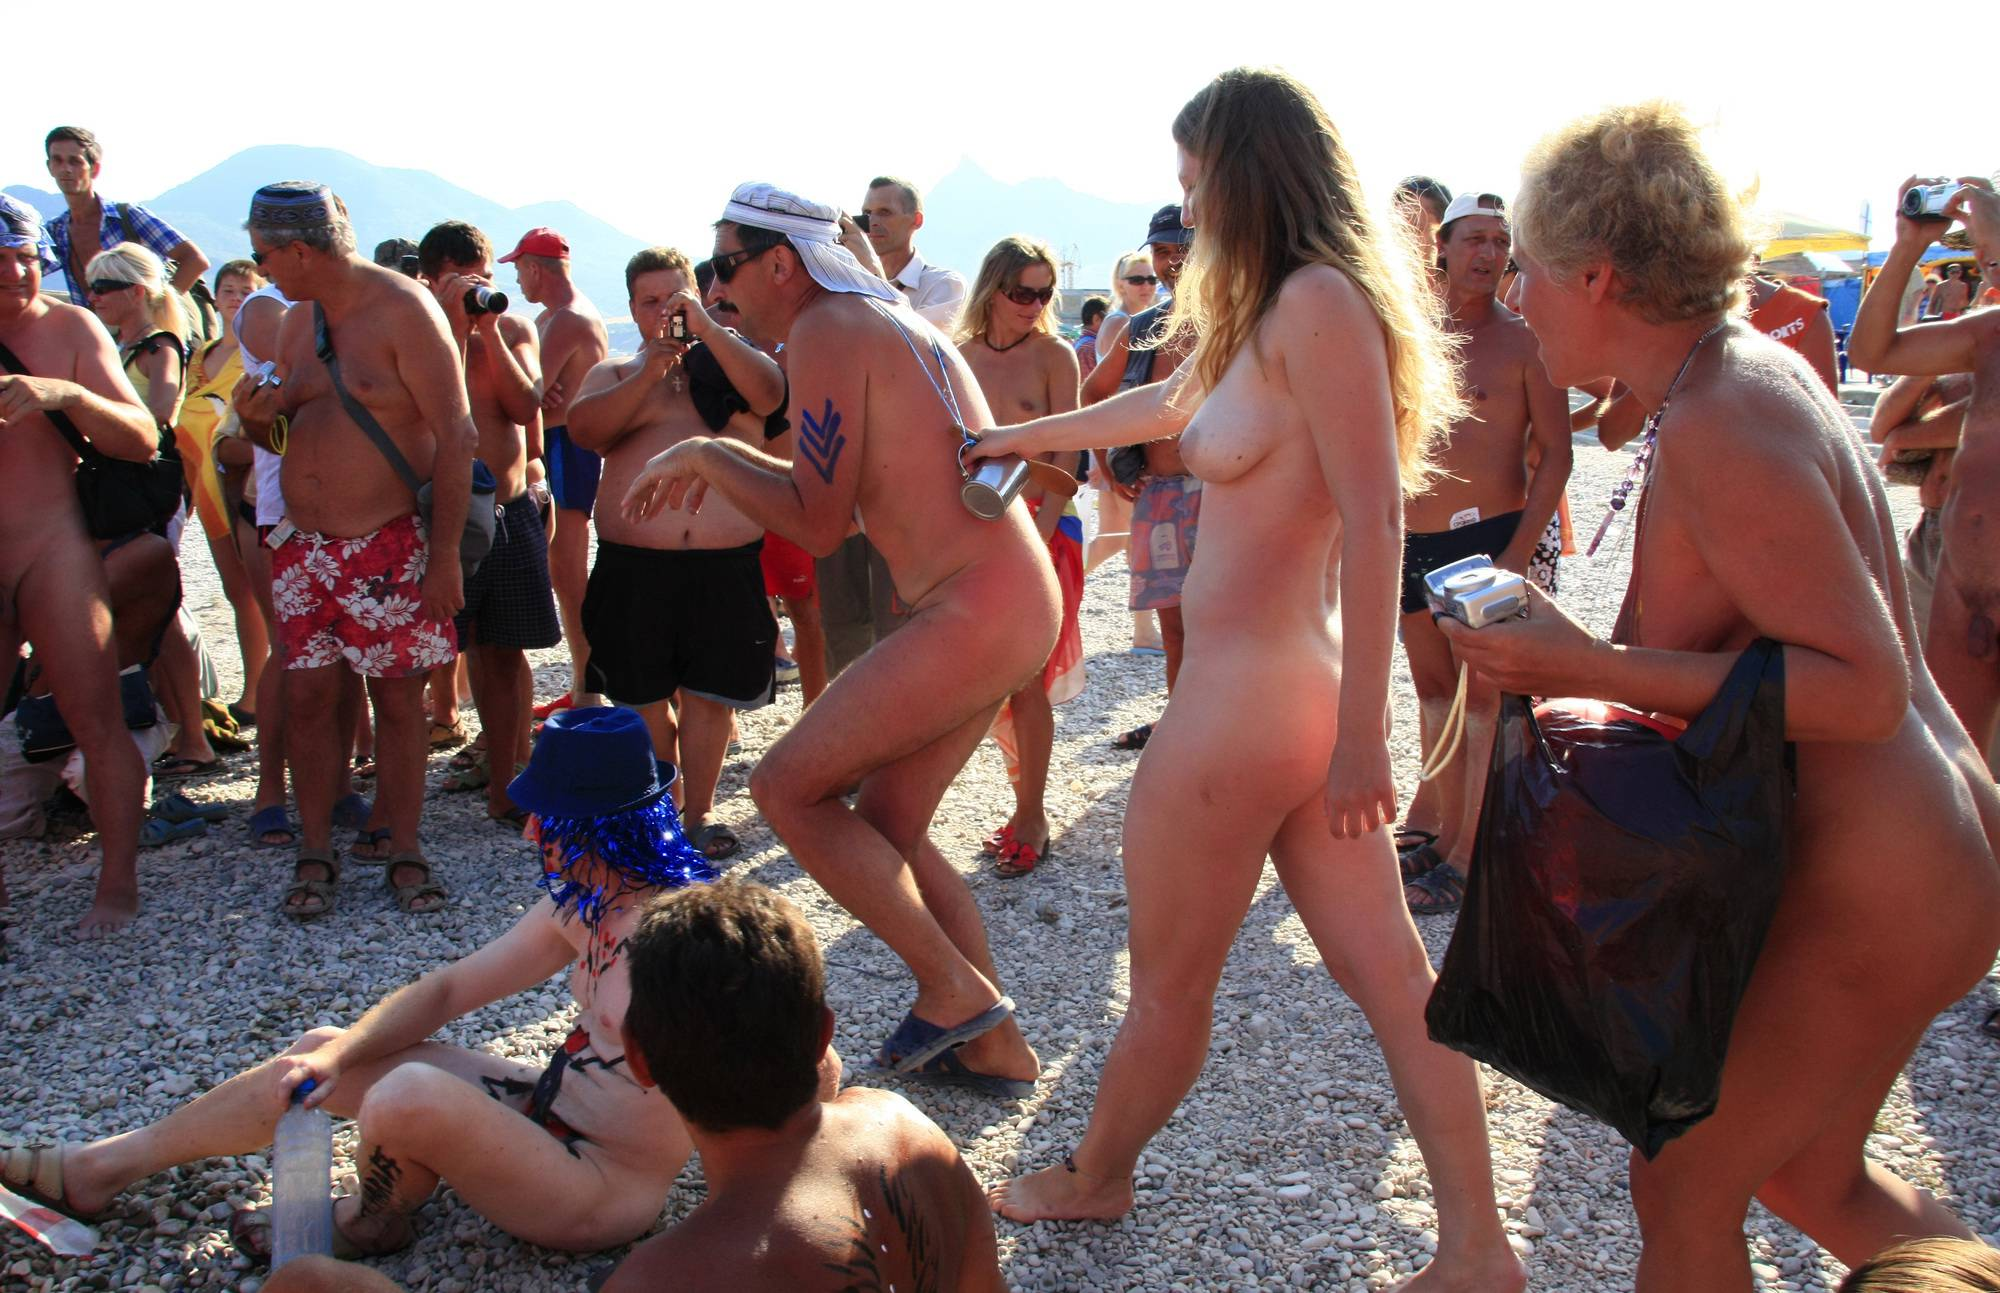 Nudist Gallery Neptune Wave of Crowds - 2